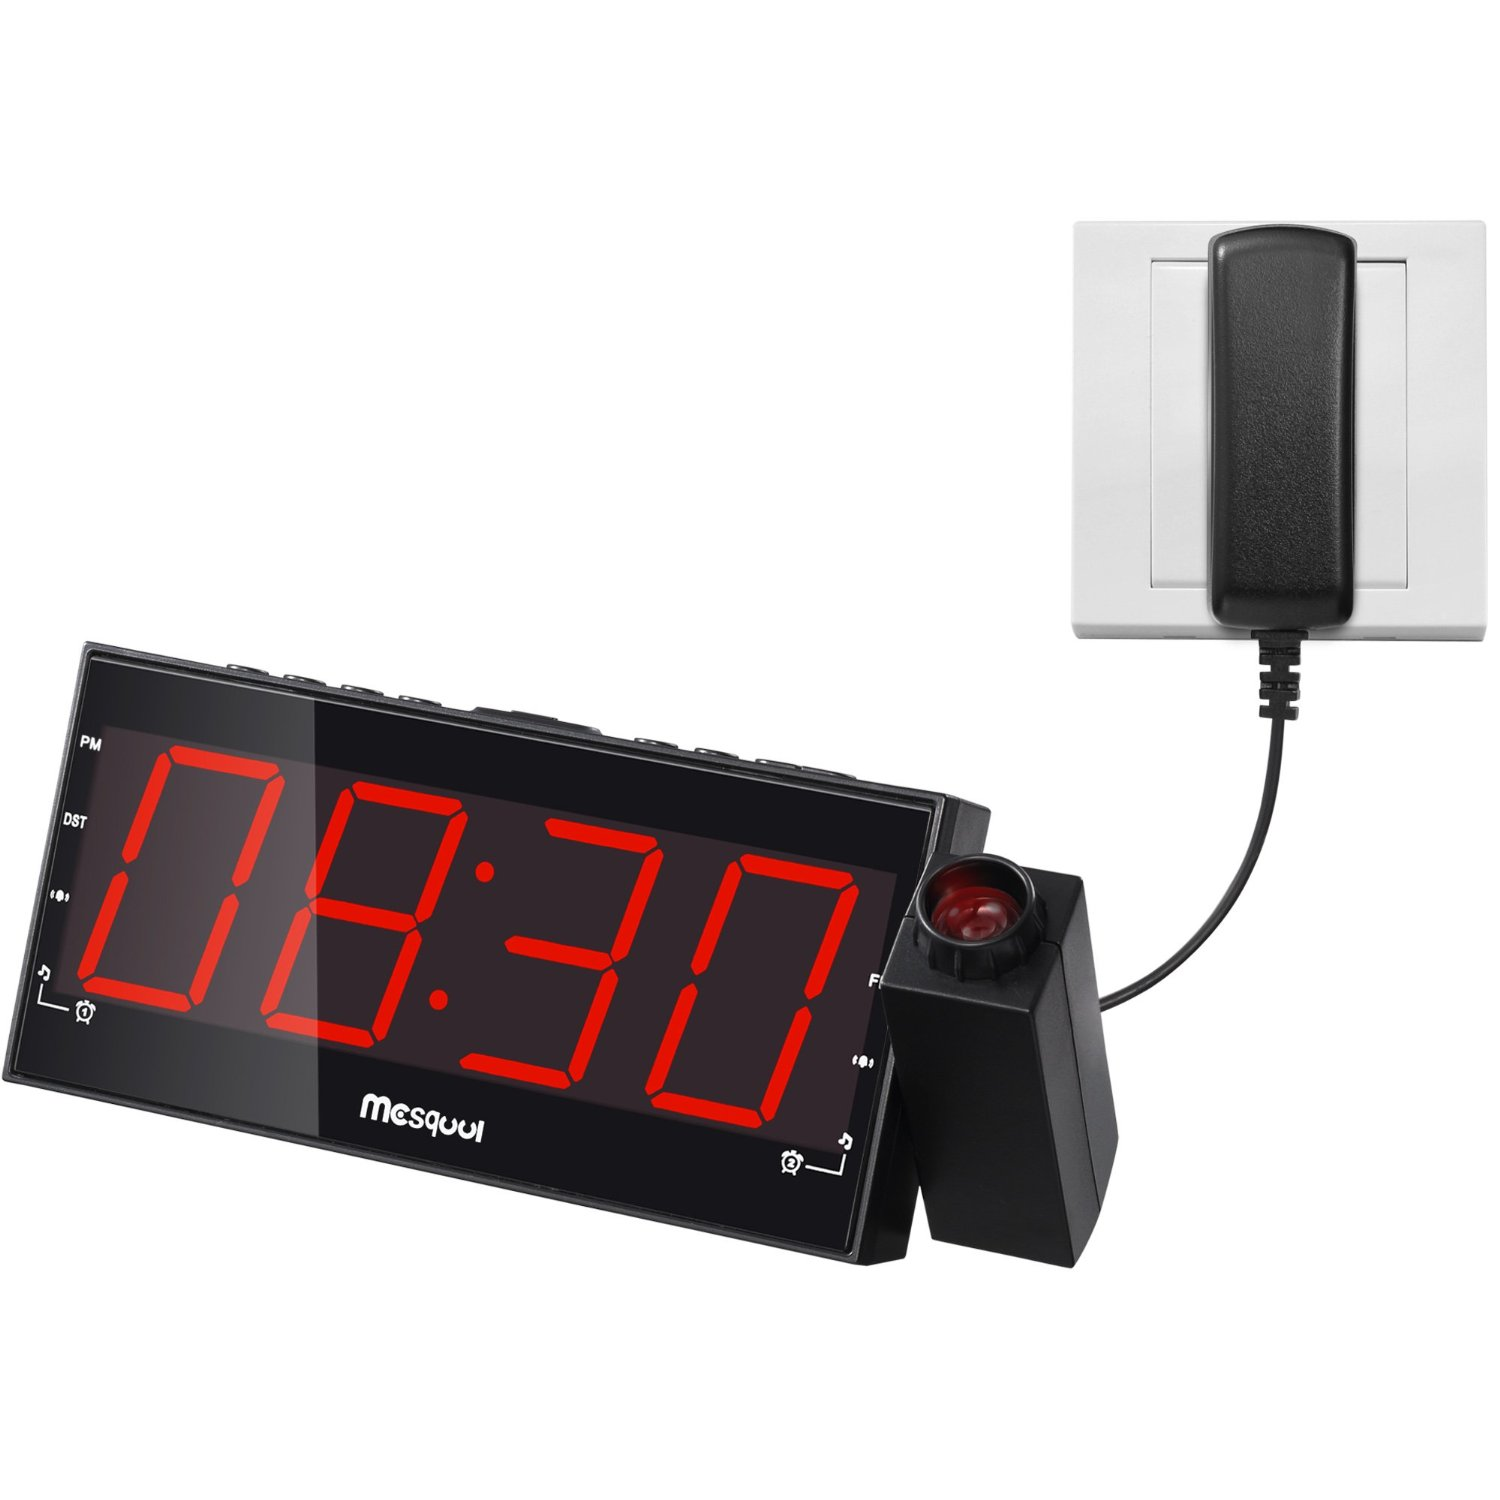 Mesqool AM/FM Digital Dimmable Projection Alarm Clock Radio with 1.8